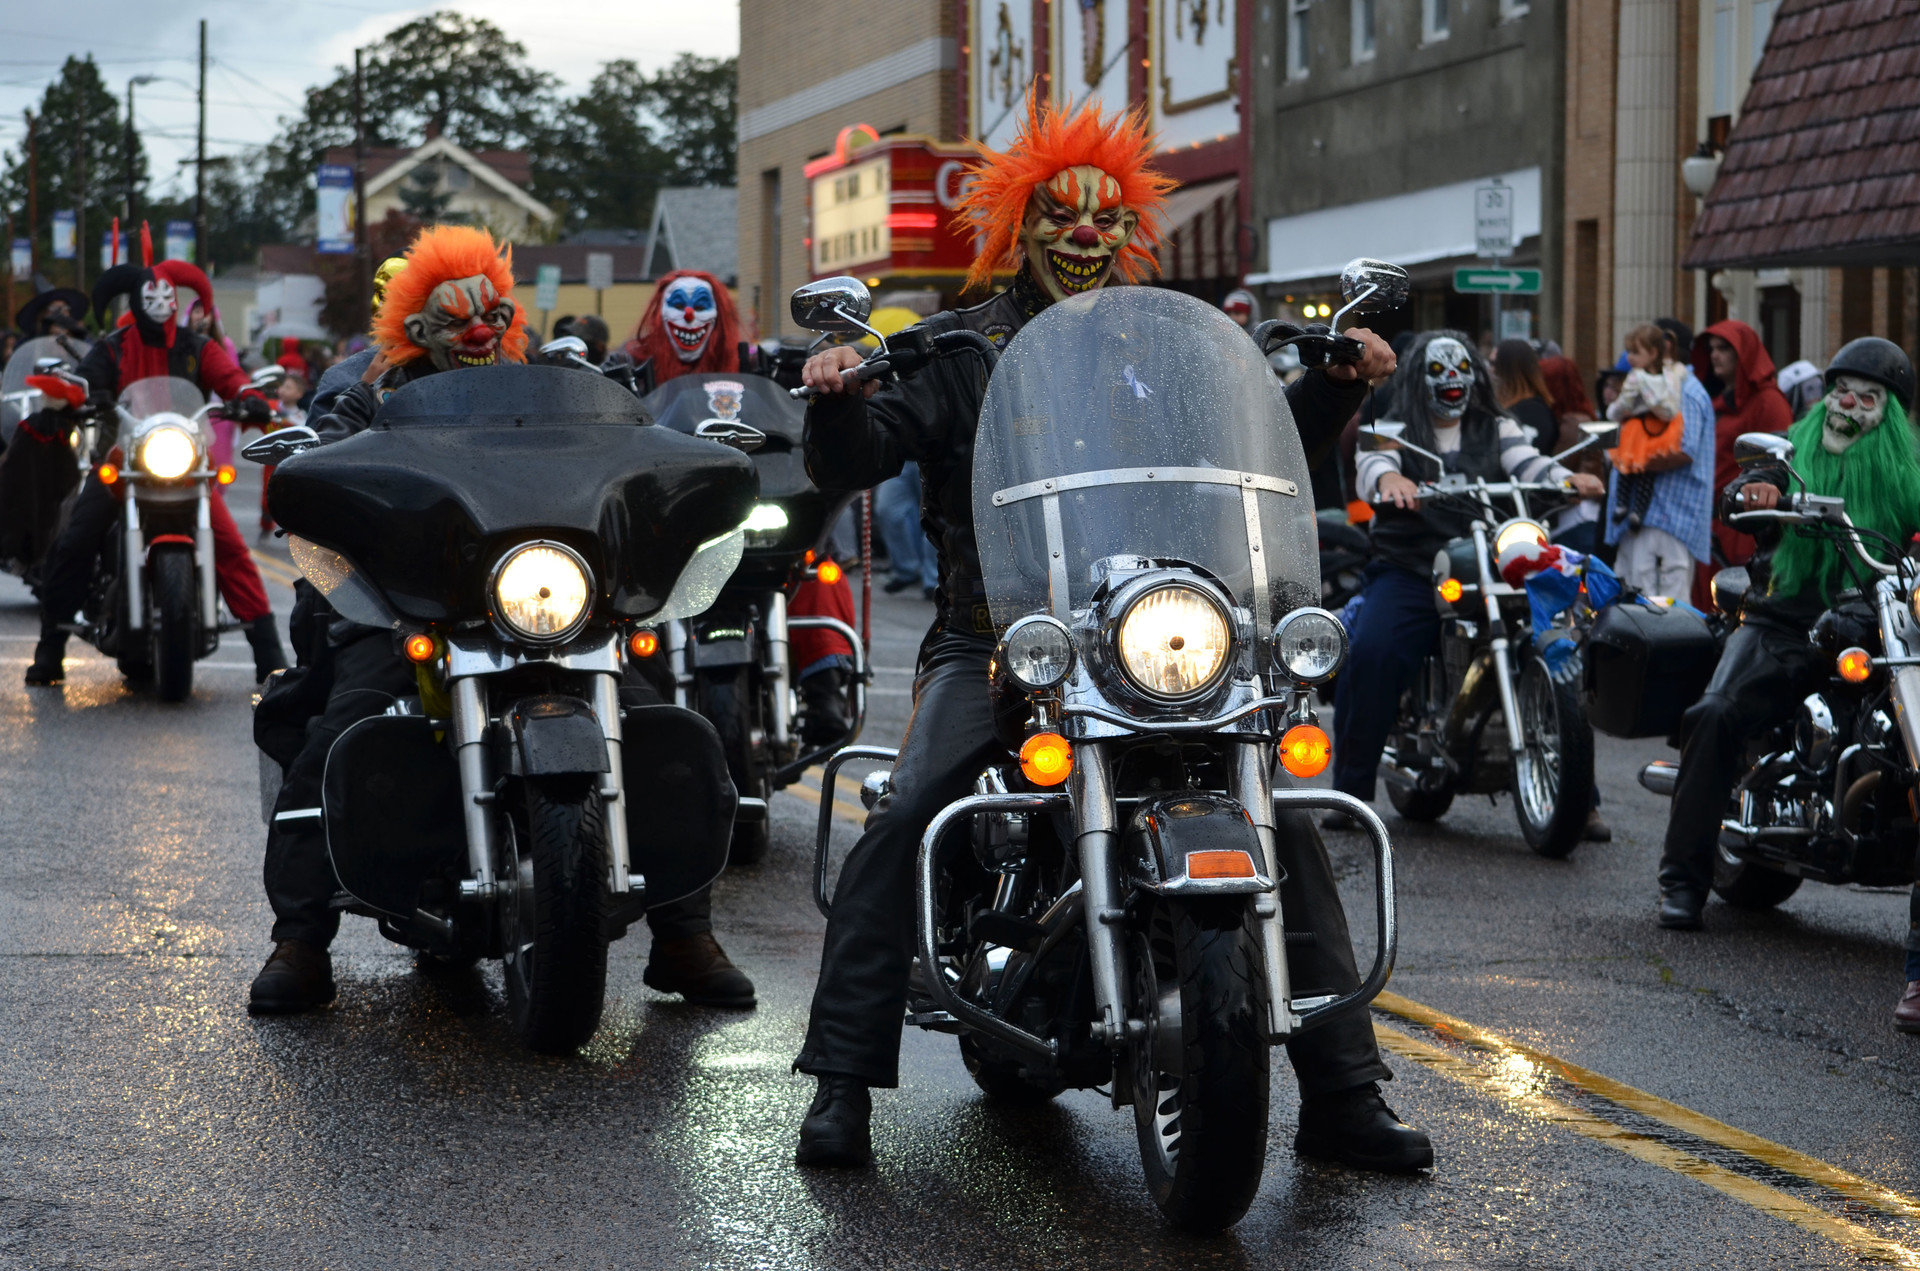 costume festival festive fun halloween holiday motorcycle parade people road streets Trip Ideas outdoor car motorcycling vehicle police demonstration